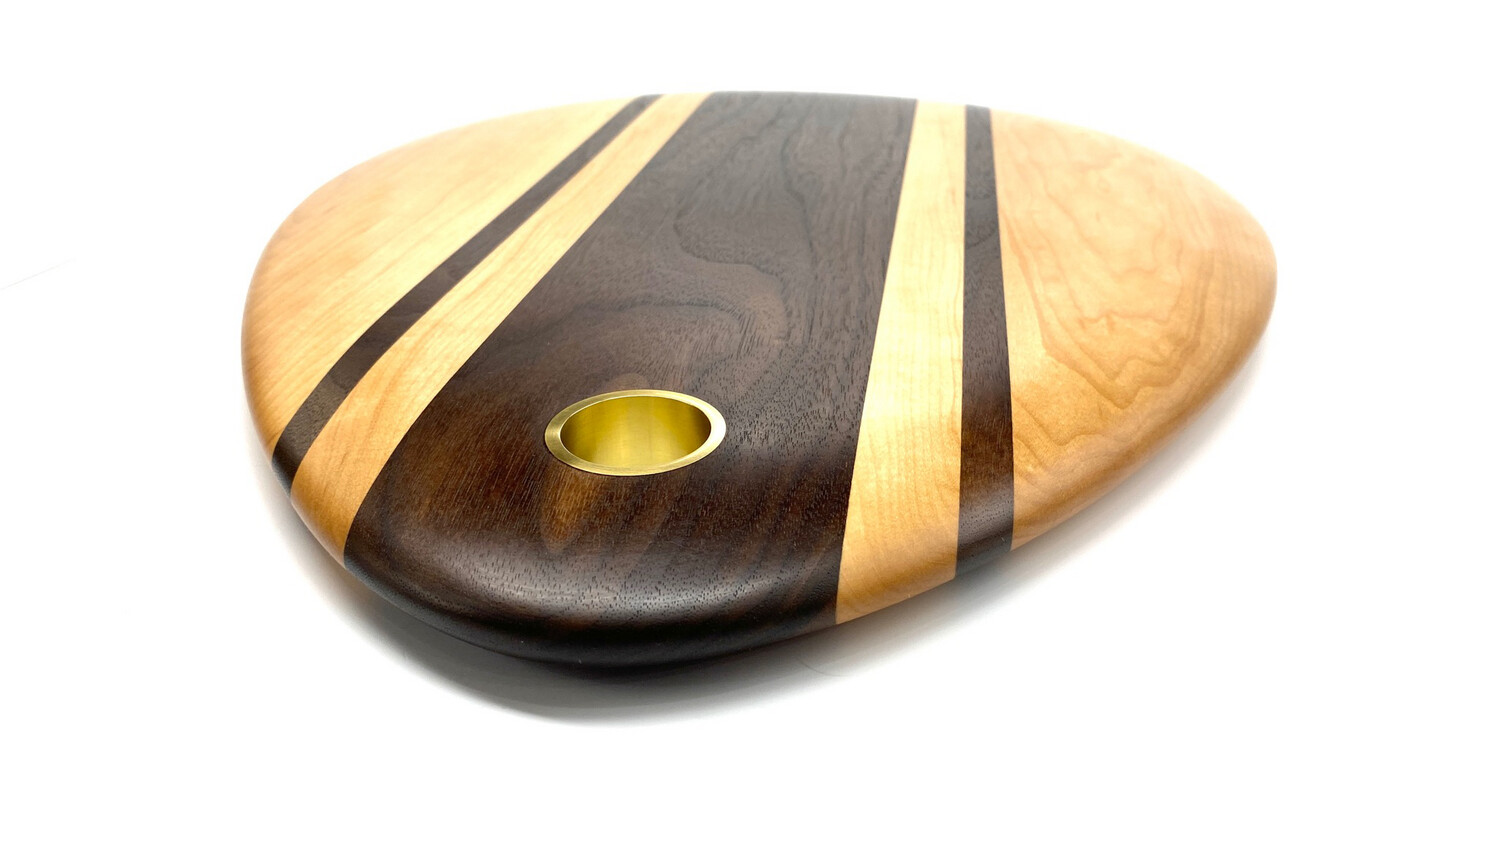 Oval Sculpted Black Walnut and Maple Serving Board